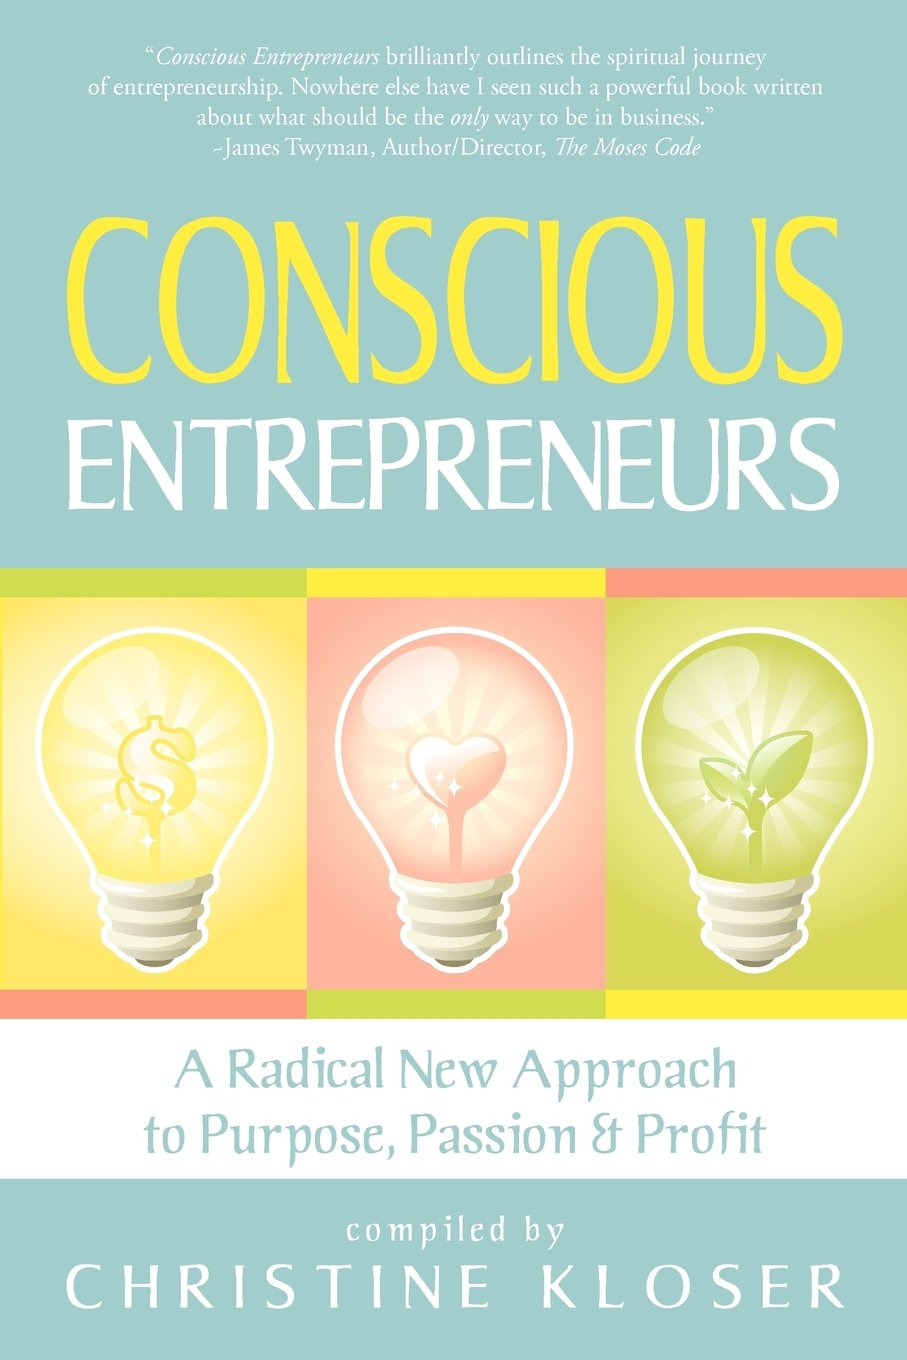 Download Conscious Entrepreneurs: A Radical New Approach to Purpose, Passion and Profit pdf